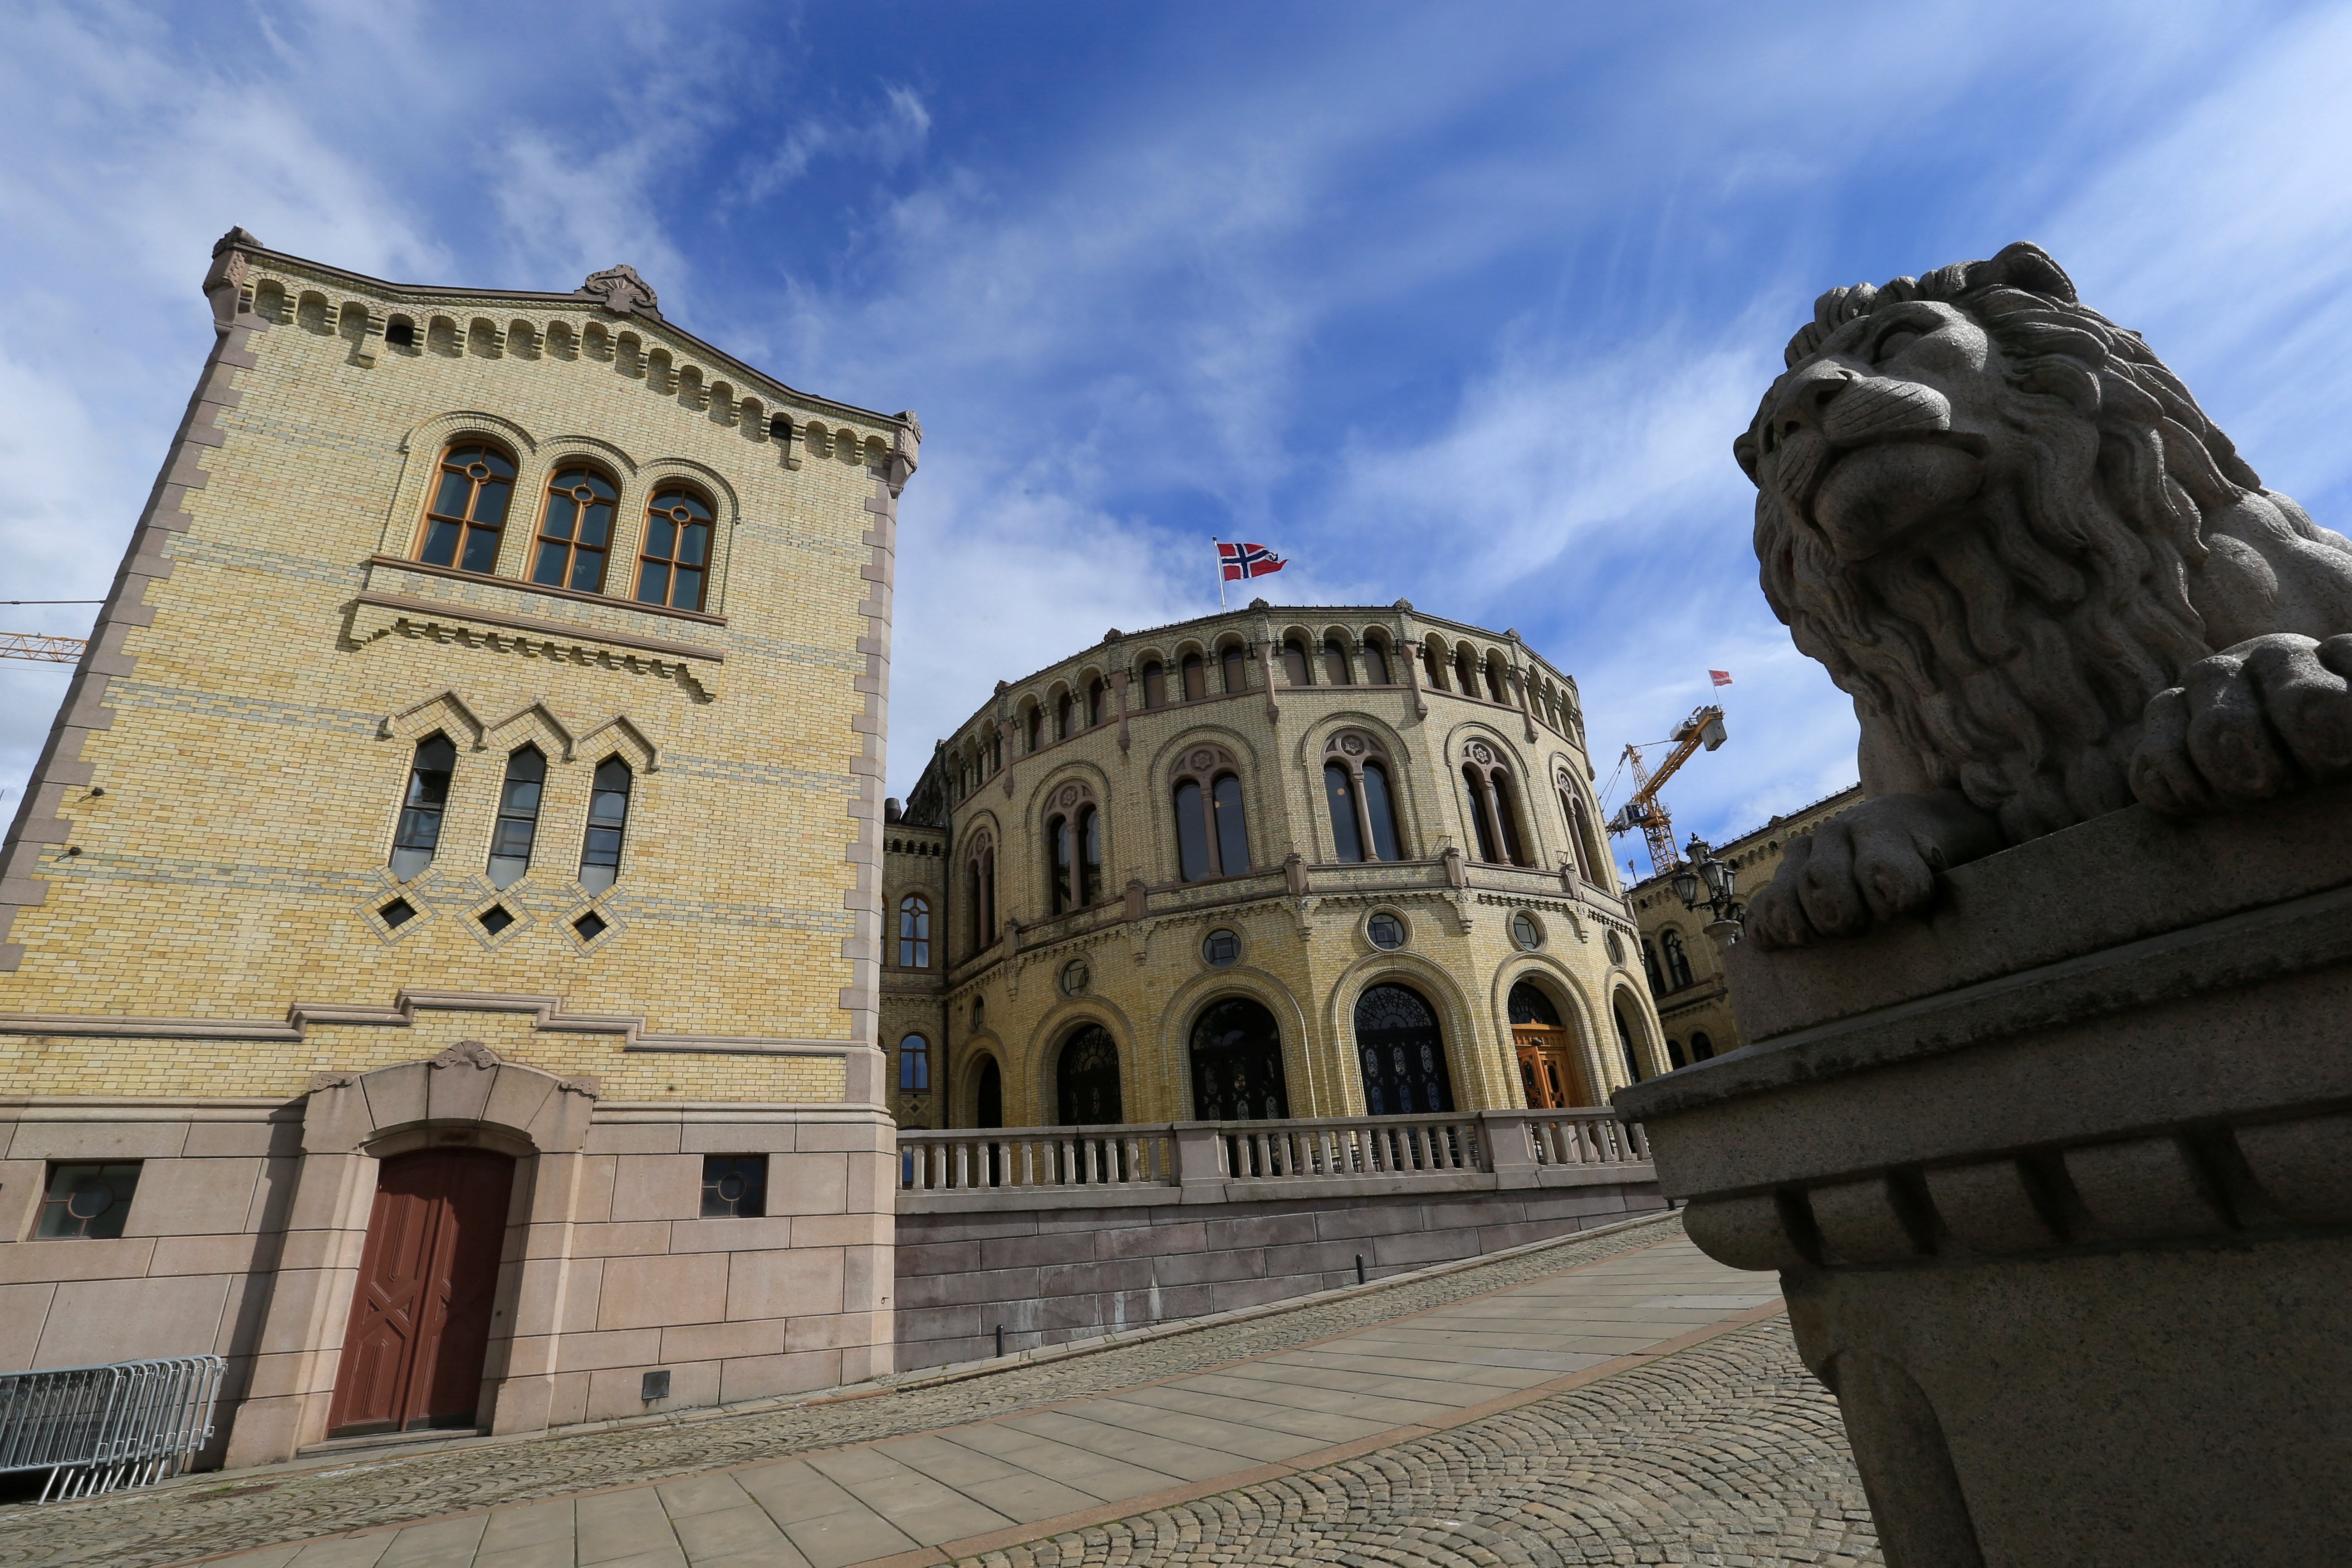 The Norwegian parliament house is seen in Oslo, Norway, May 31, 2017. (Reuters File Photo)